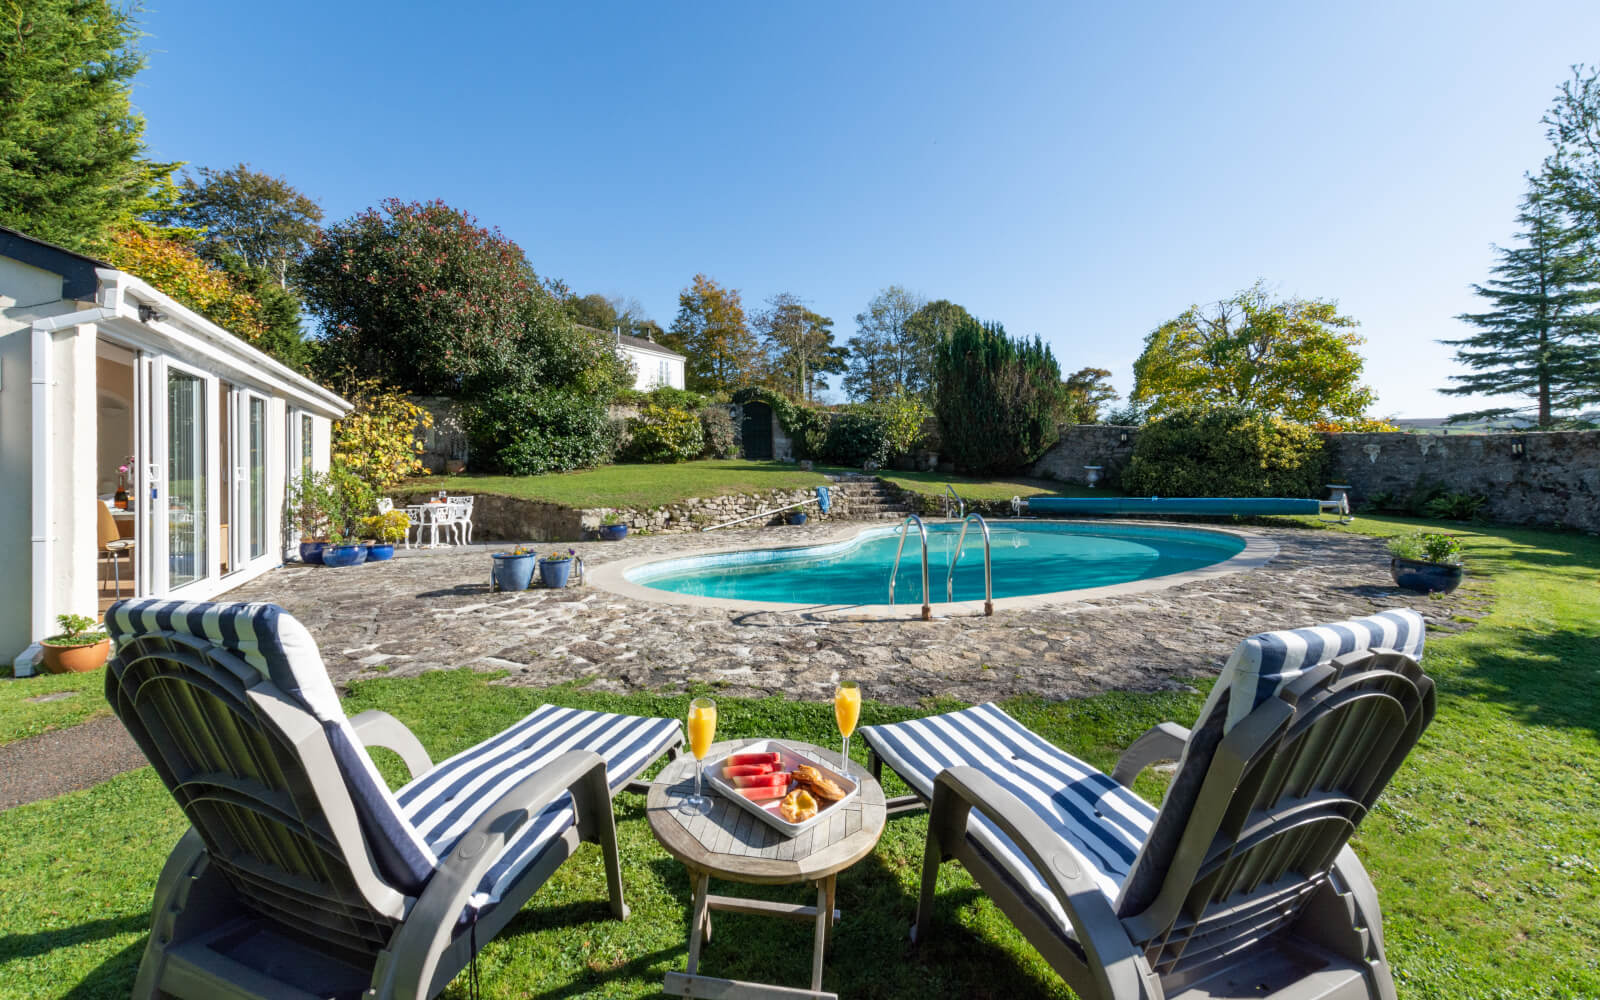 Holiday Cottages With Swimming Pools In Wales To Rent - Save up to 60%